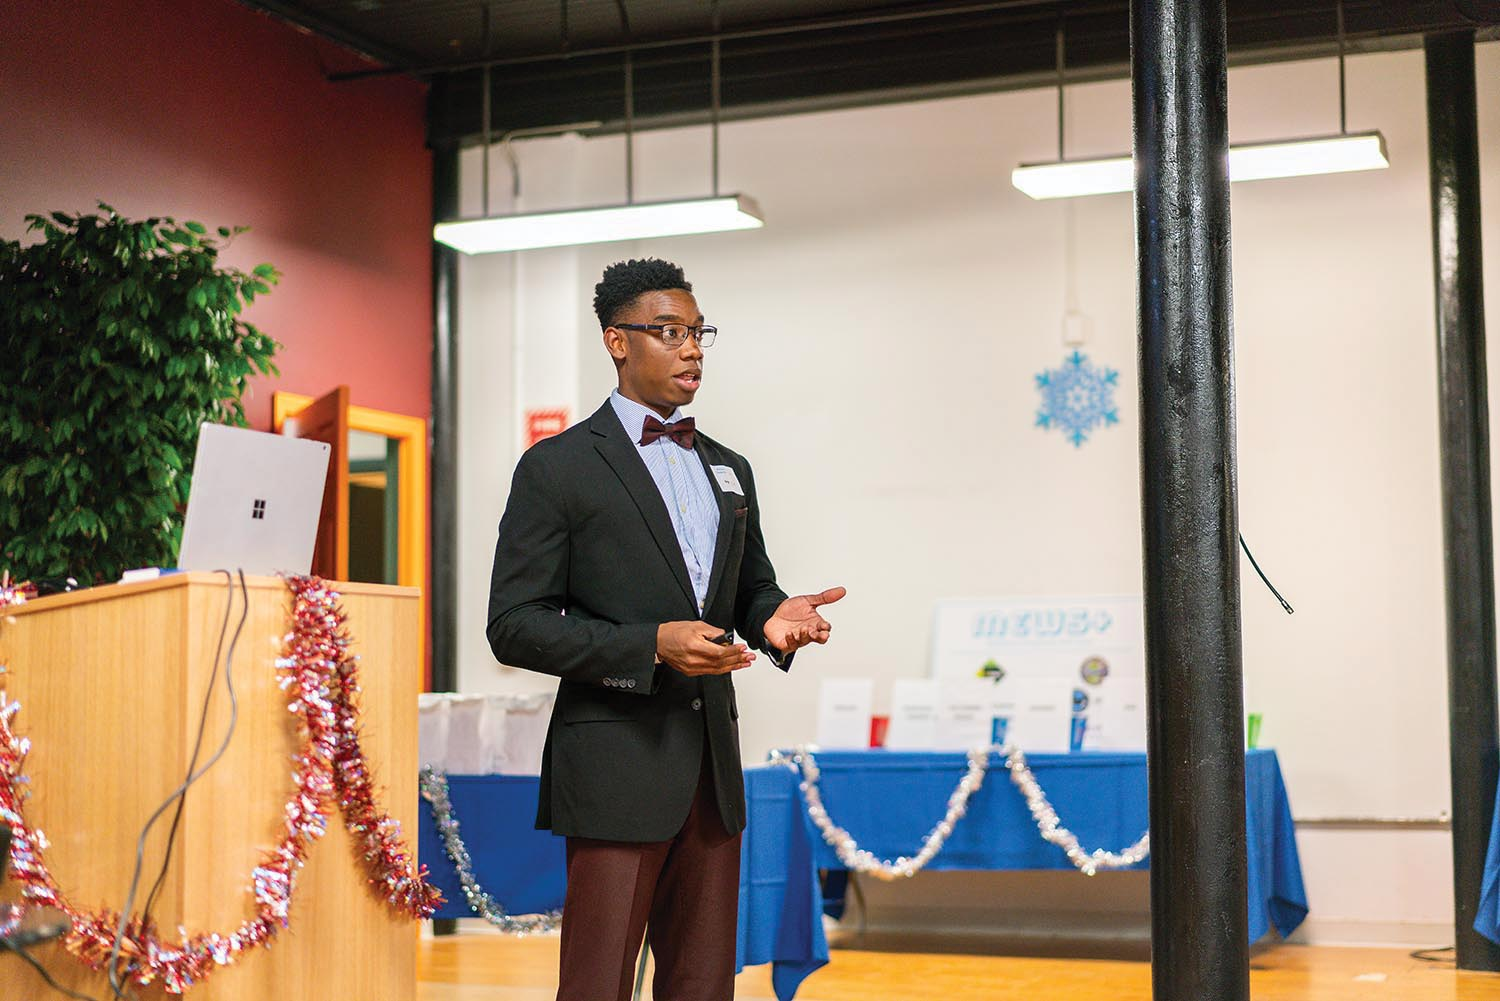 StARTup Shark Tank: Students Pitch Next-Gen Socially Conscious Ventures